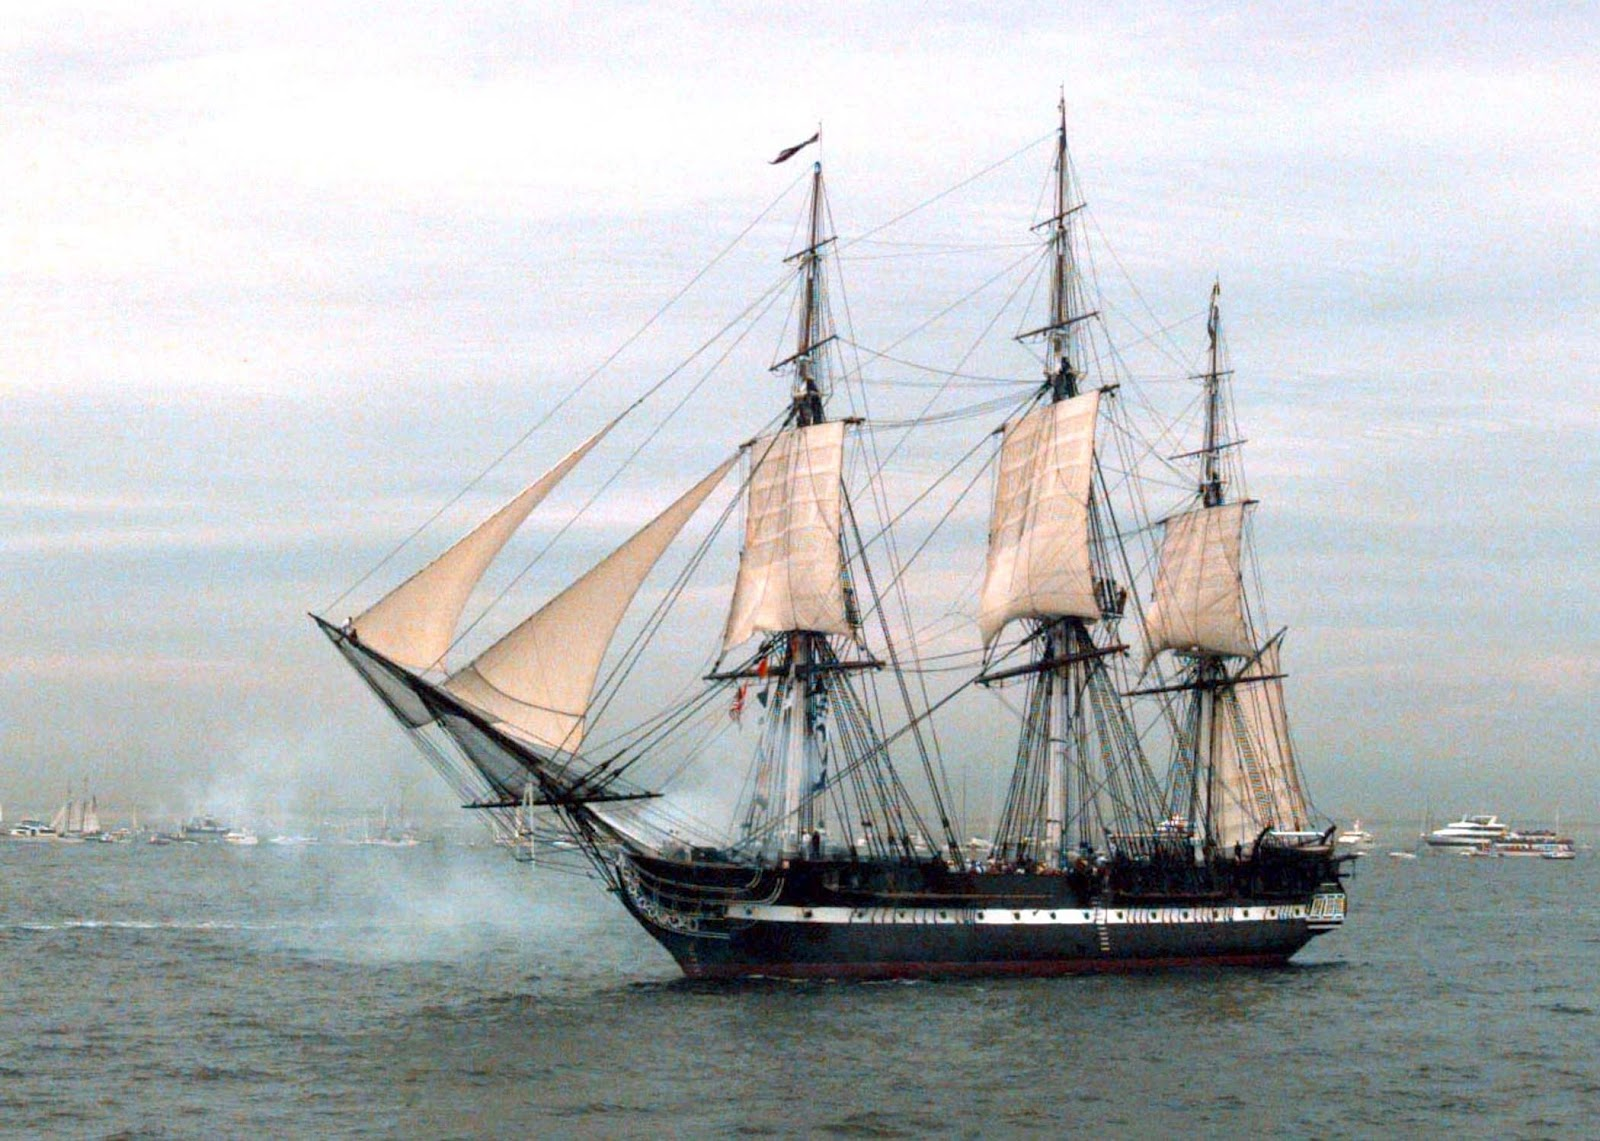 uss consitution Last voyage of the uss constitution is a side quest in fallout 4 the sole survivor has been drafted by ironsides to assist him and his robot crew in their quest to return the uss constitution to the atlantic ocean.